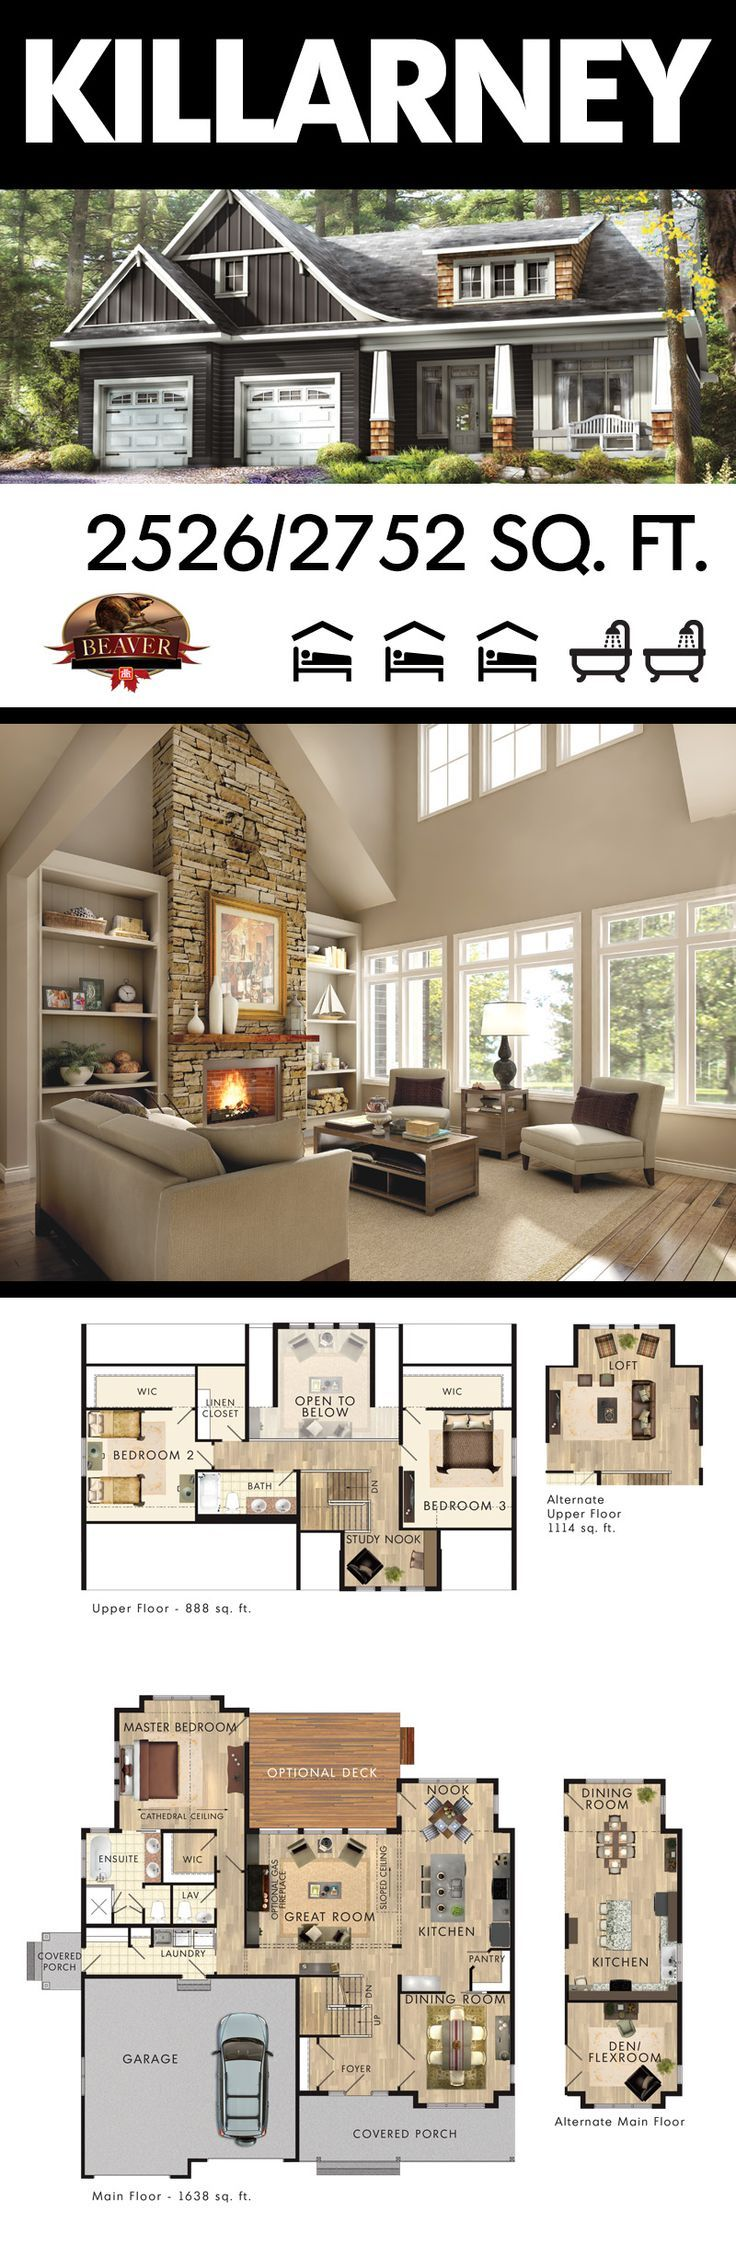 #BeaverHomesAndCottages introduces a large family home that has an alternative floor plan. The versatile Killarney offers a choice of layouts.